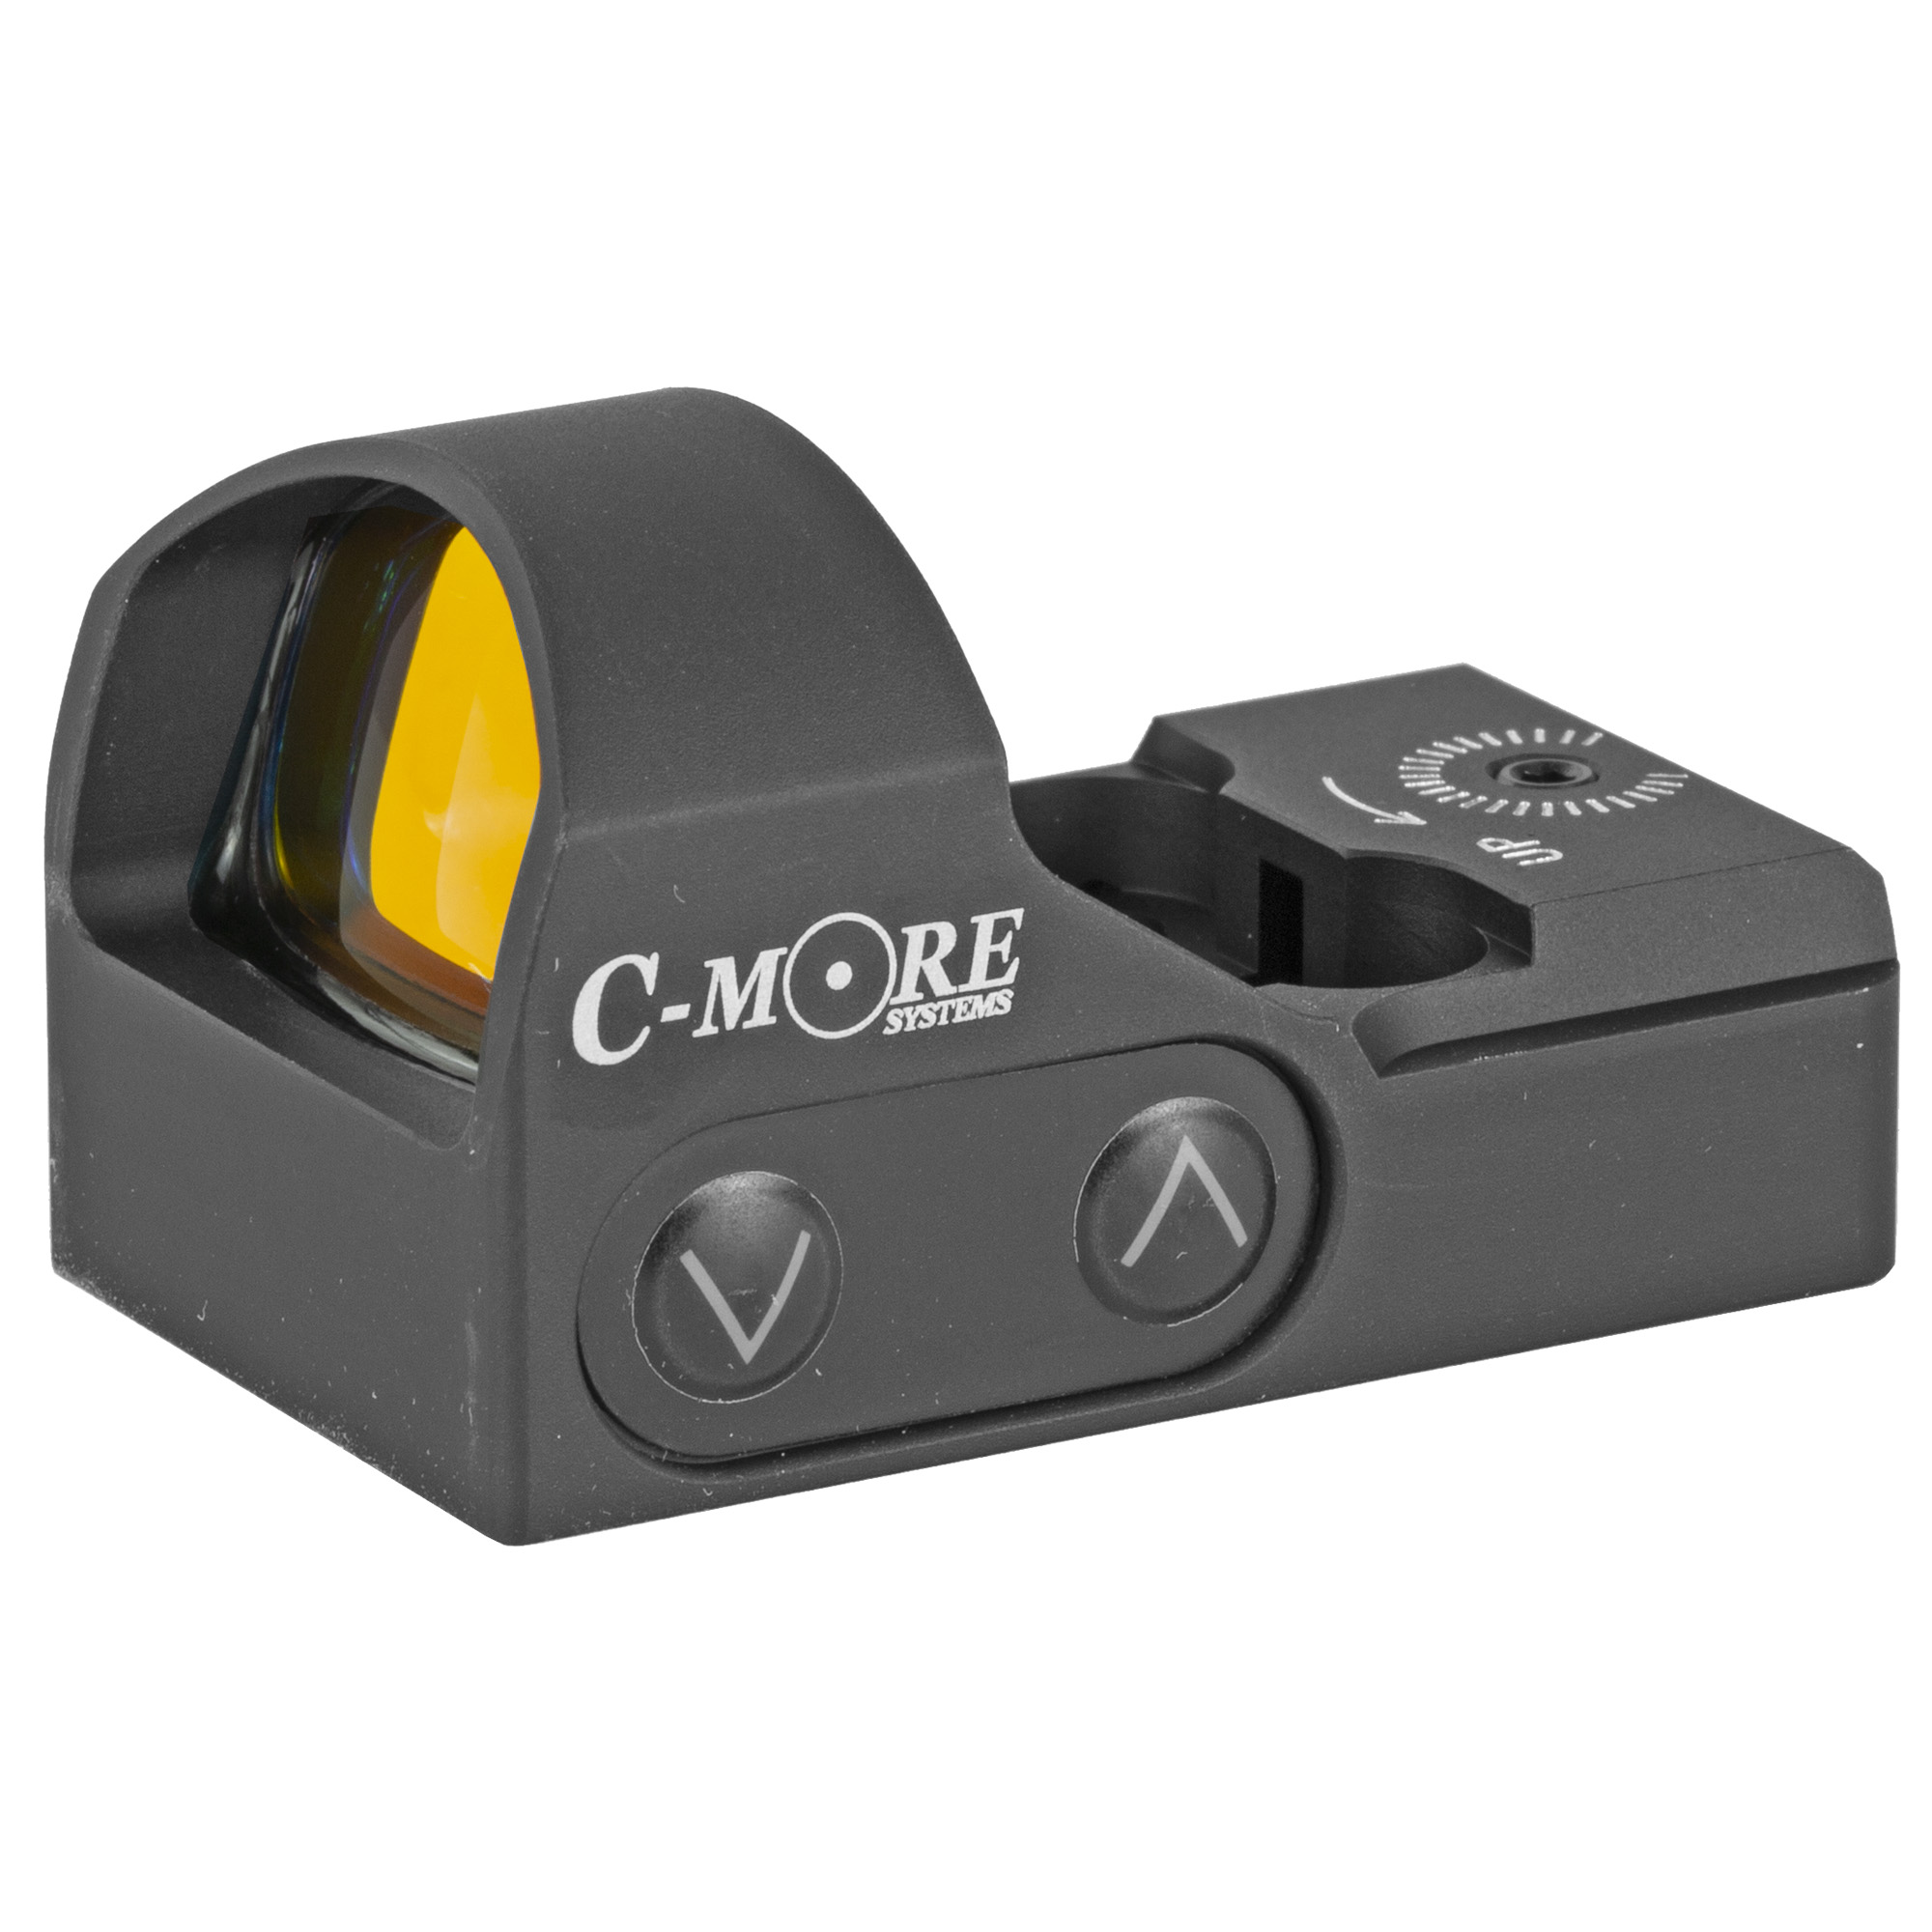 The STS2 sight is the newest addition to the C-MORE line up. It's compact design and multitude of features make it a great choice for any application.